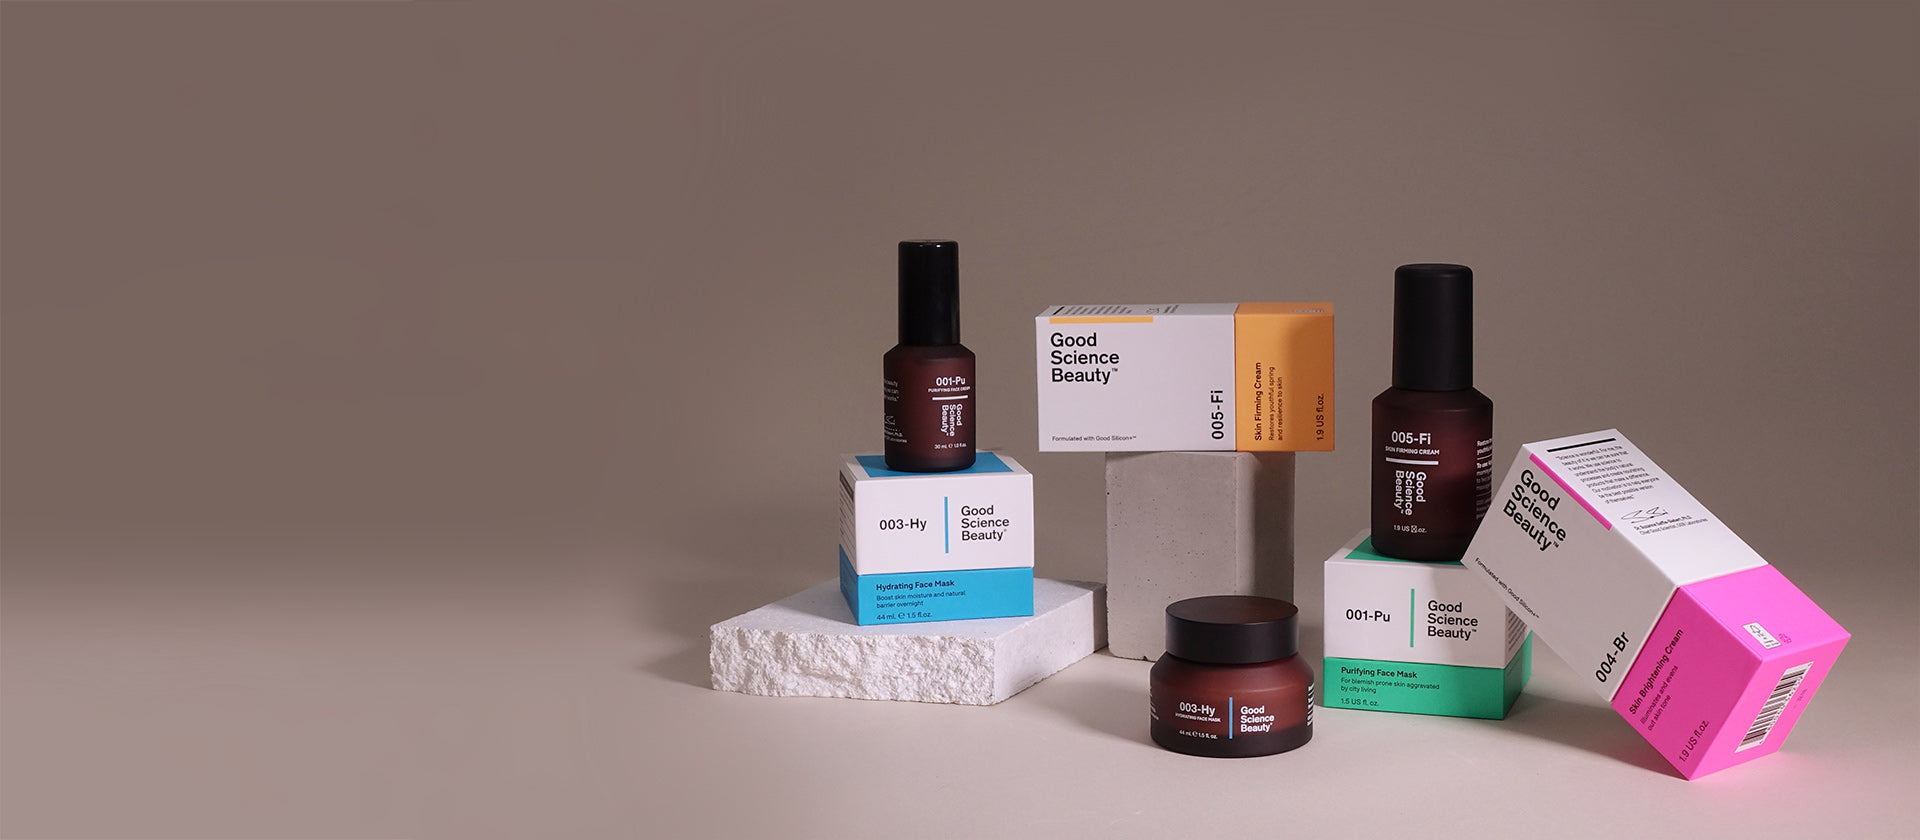 Arrangement of amber frosted glass bottles of Good Science Beauty creams, an amber frosted glass jar of 003-Hy Hydrating Face Mask, and four Good Science Beauty product boxes, each of which consists of a largely white upper section and a brightly coloured lower section